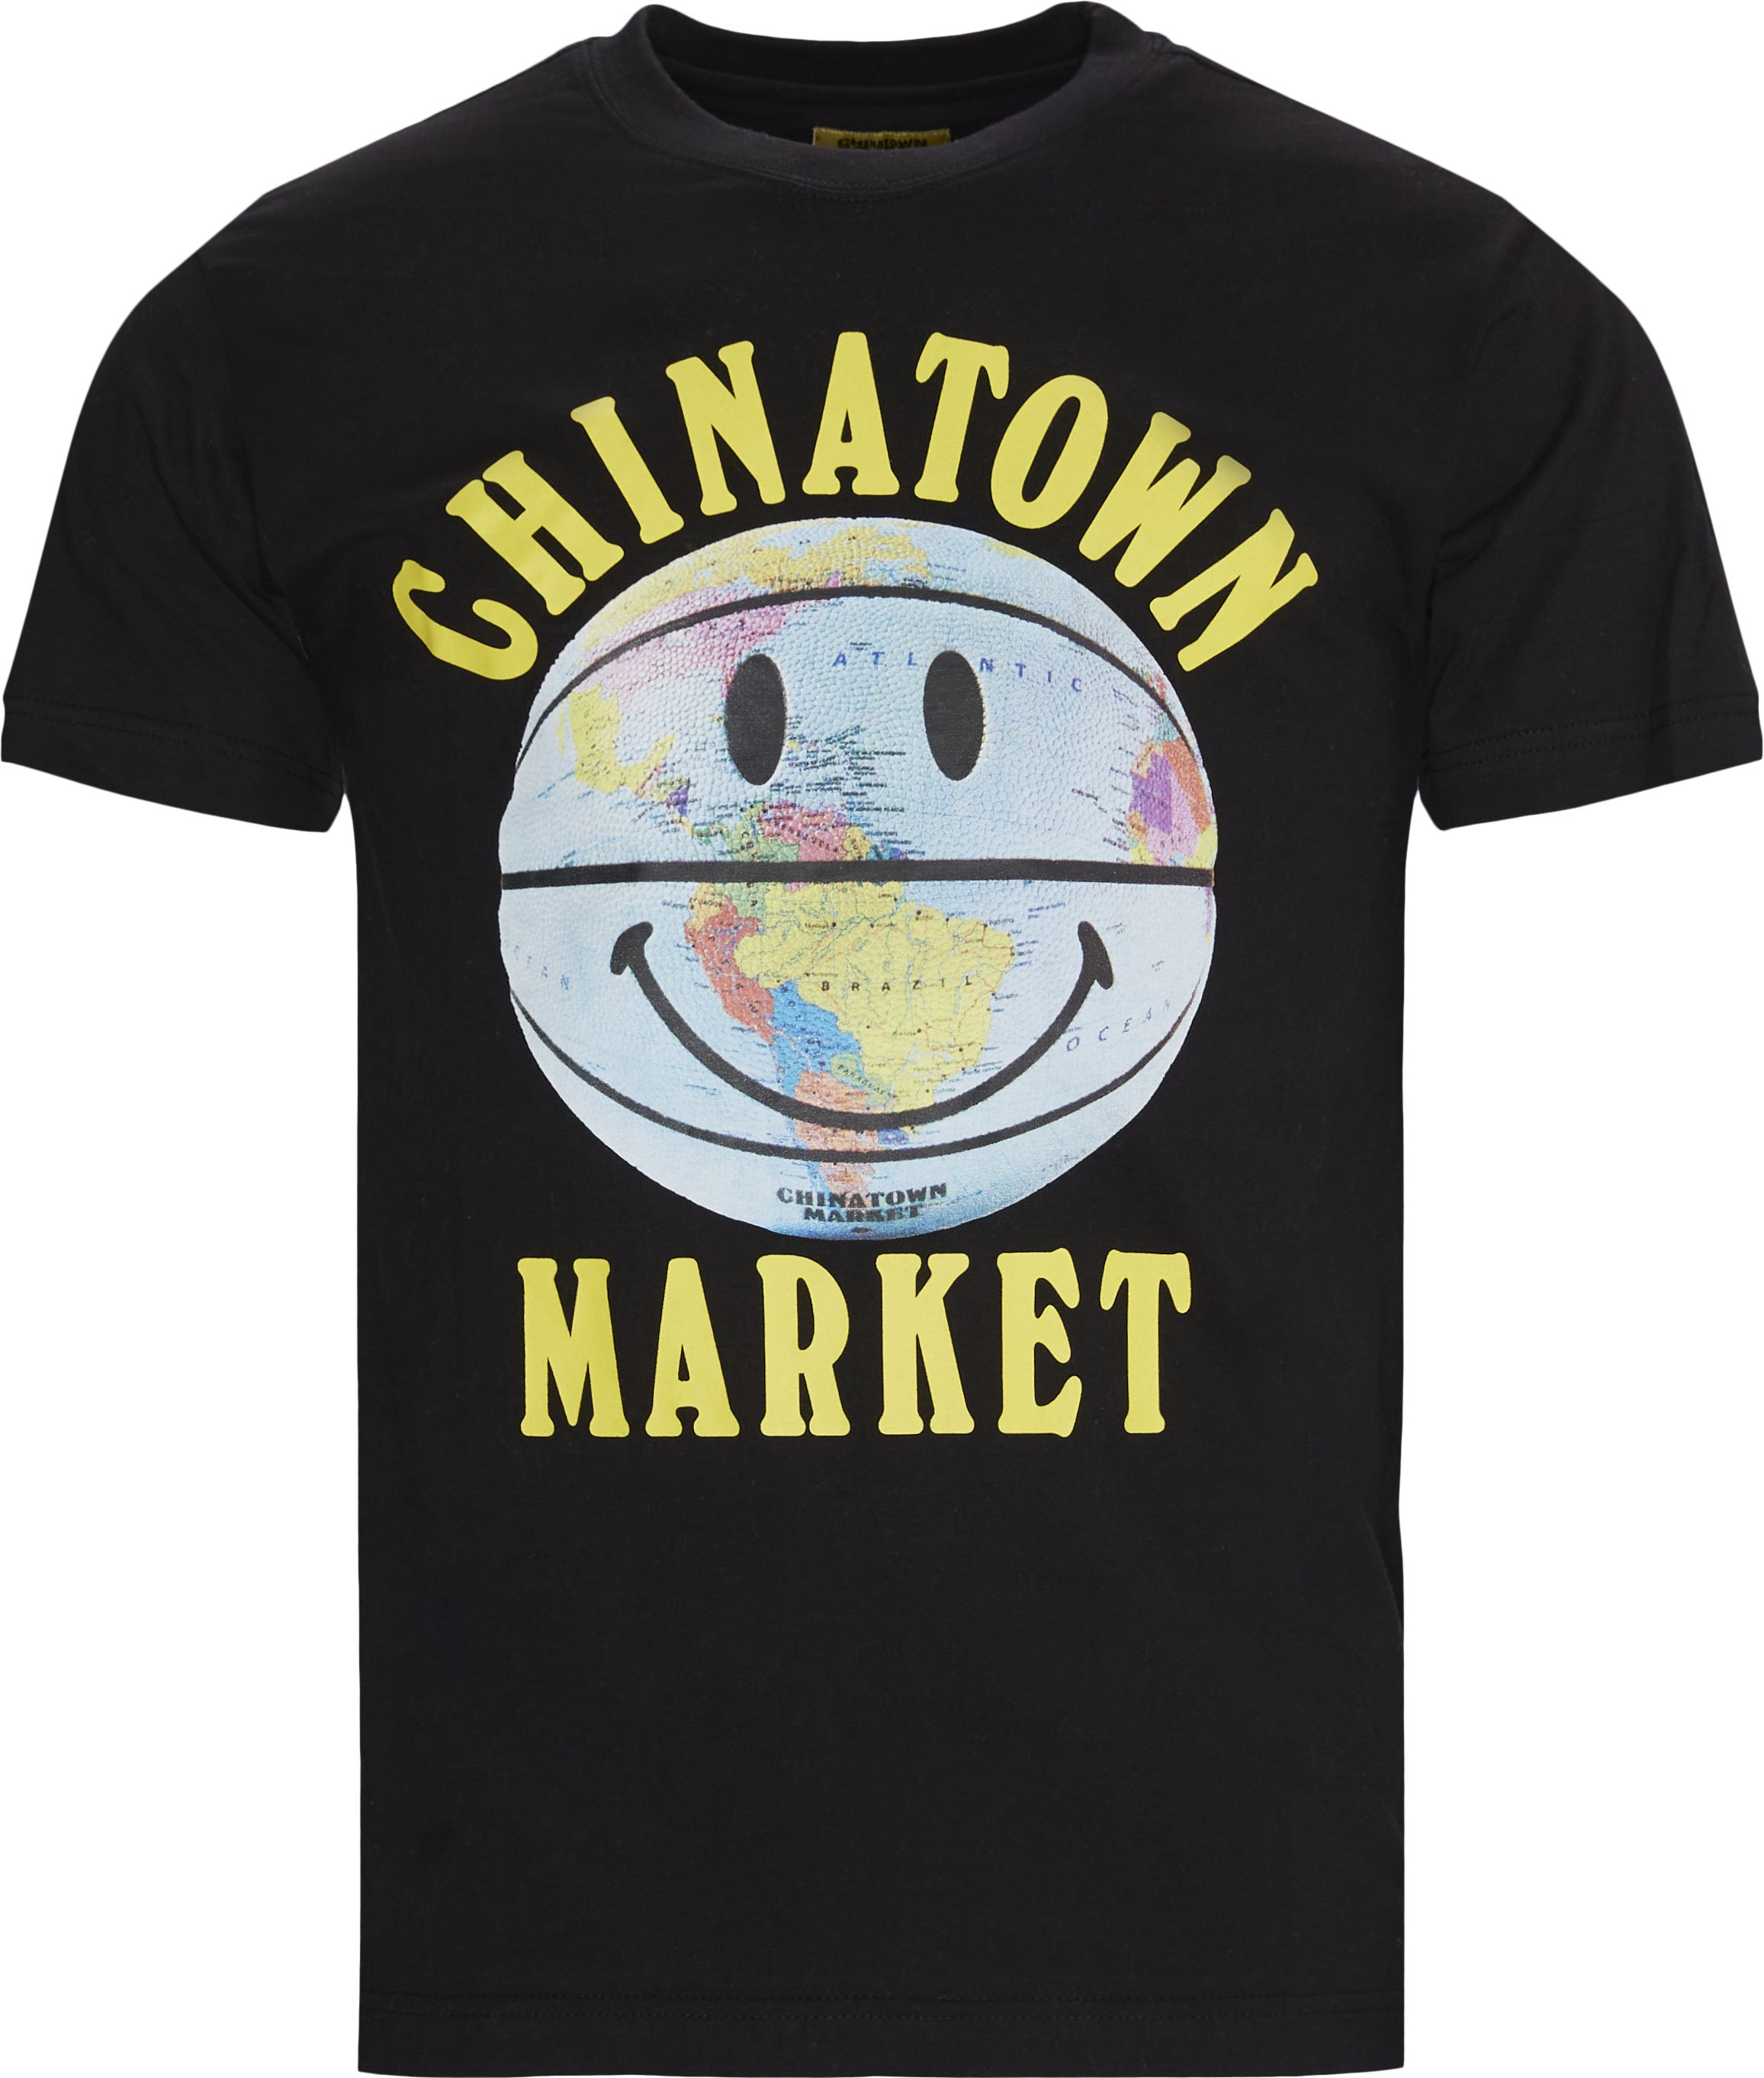 Smiley Globe Ball Tee - T-shirts - Regular - Black